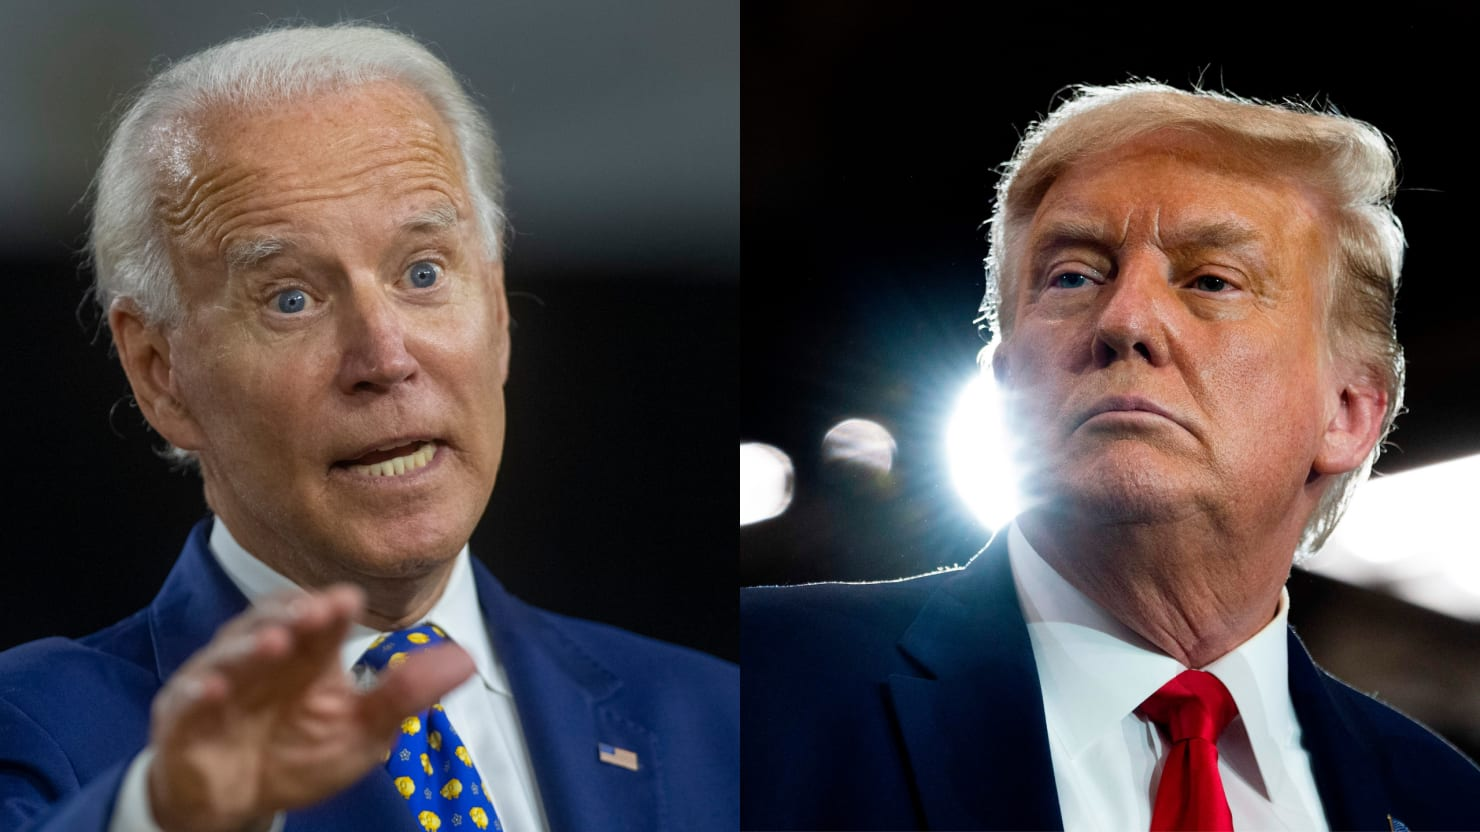 Trump Makes Same Gaffe as Biden in Least Self-Aware Attack